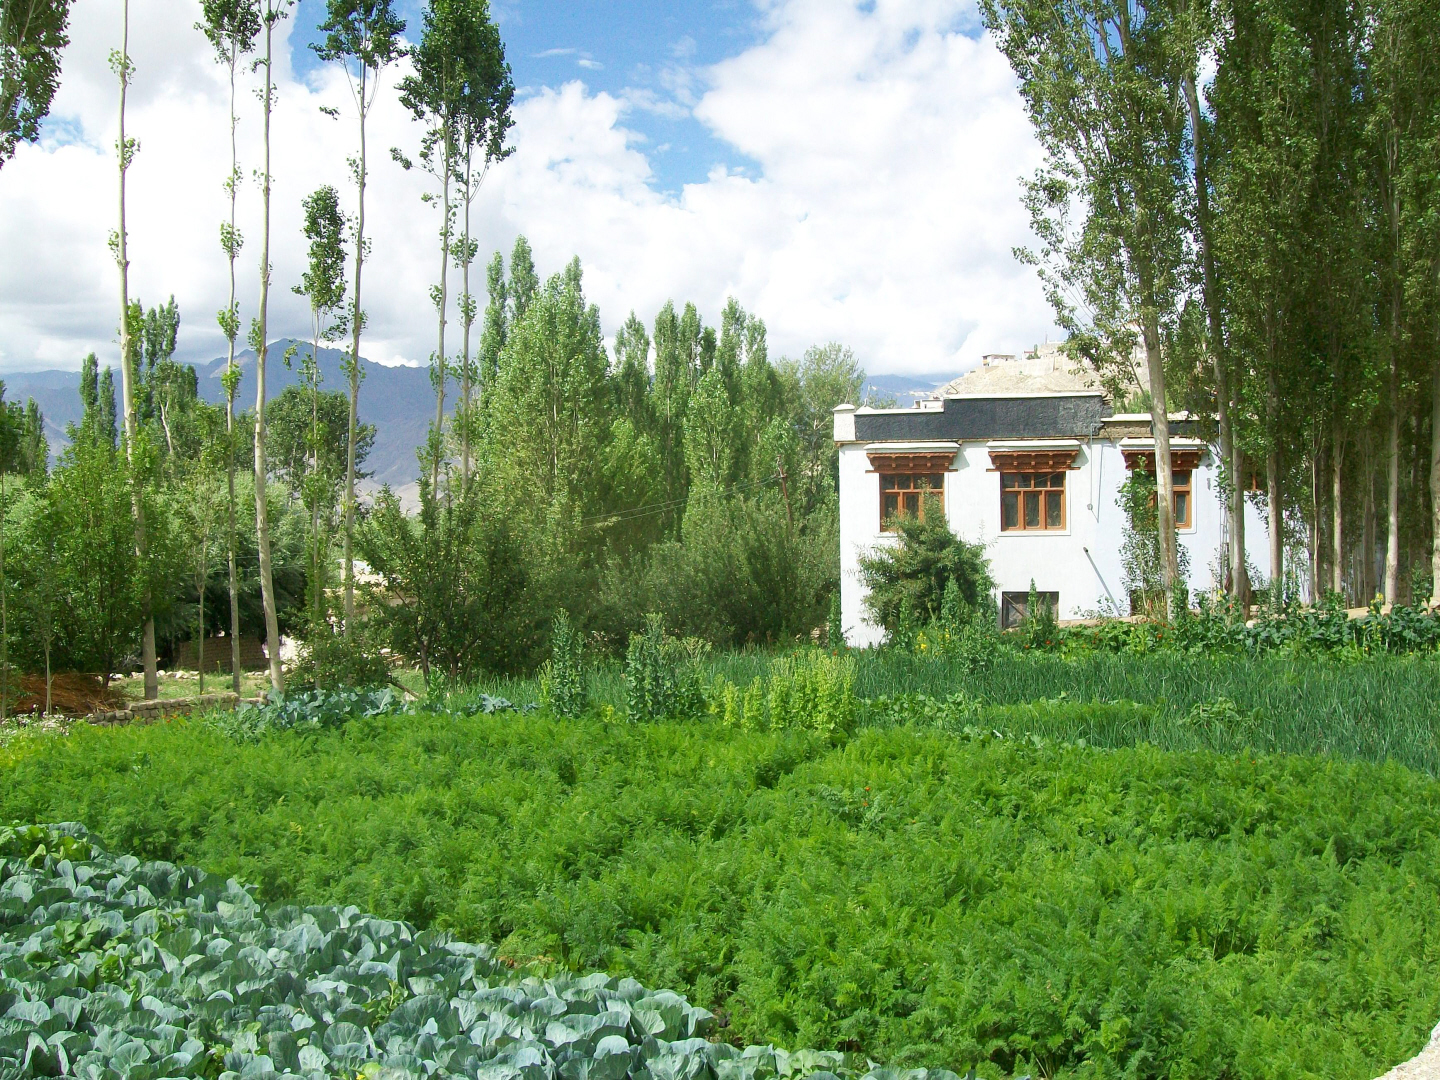 Buddhist Ladahki Home with garden - Leh, Ladakh - India